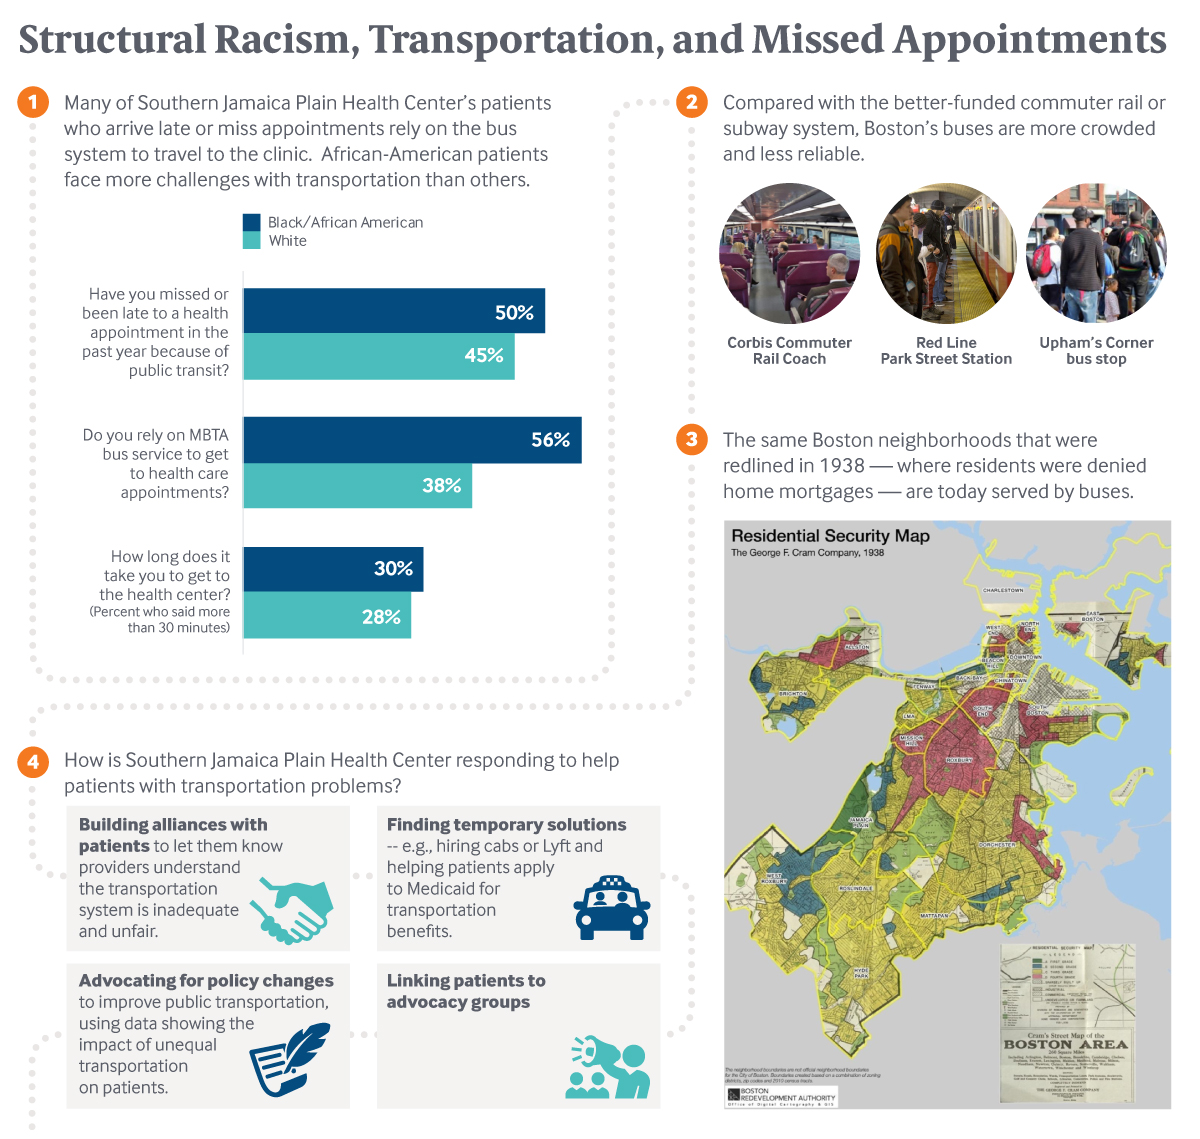 Structural Racism, Transportation, and Missed Appointments